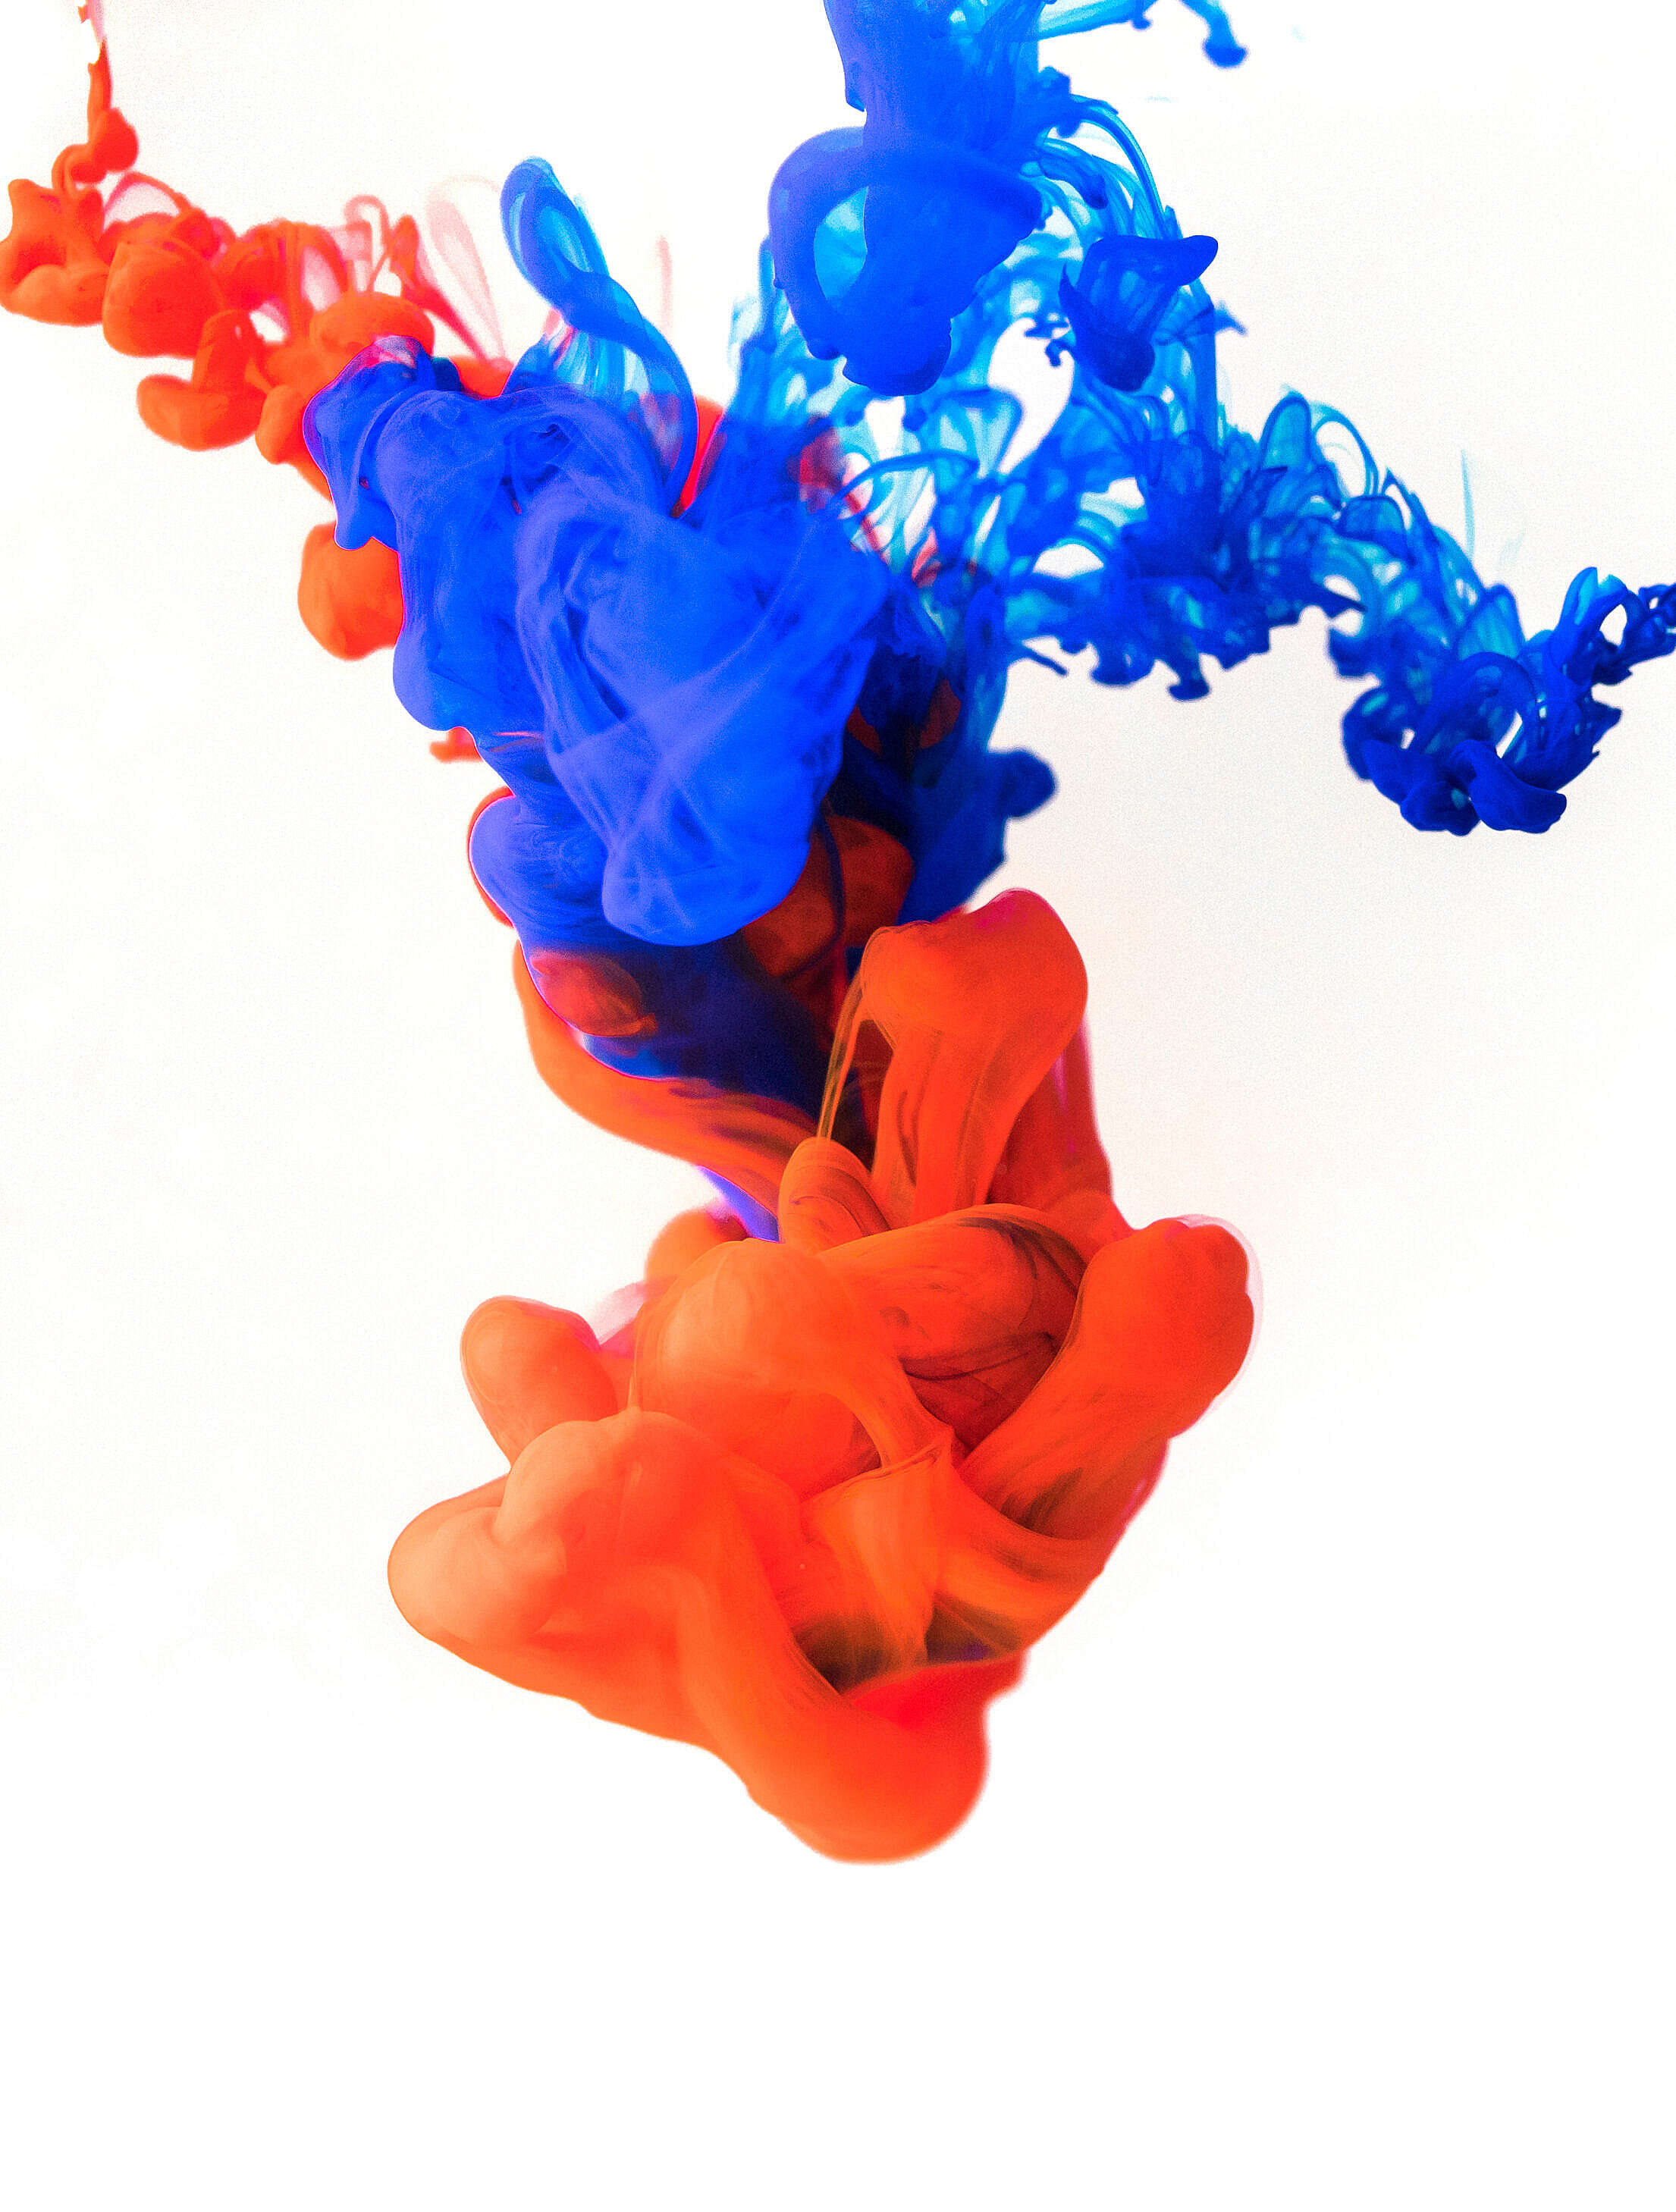 Red and Blue Ink Free Stock Photo